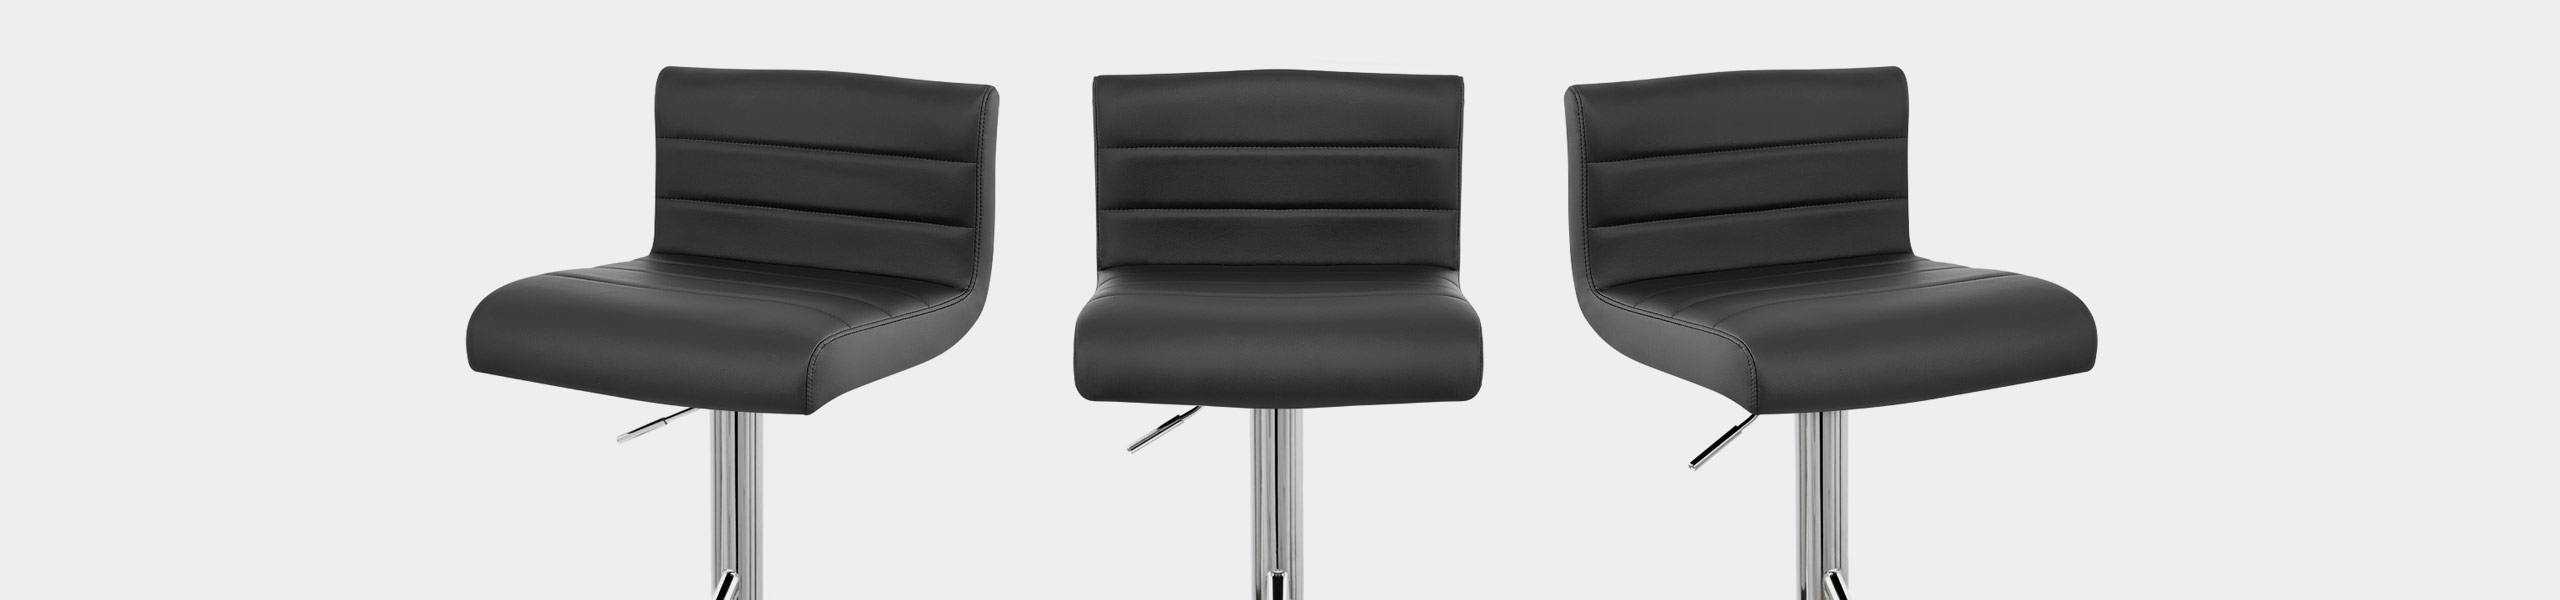 Style Bar Stool Black Video Banner